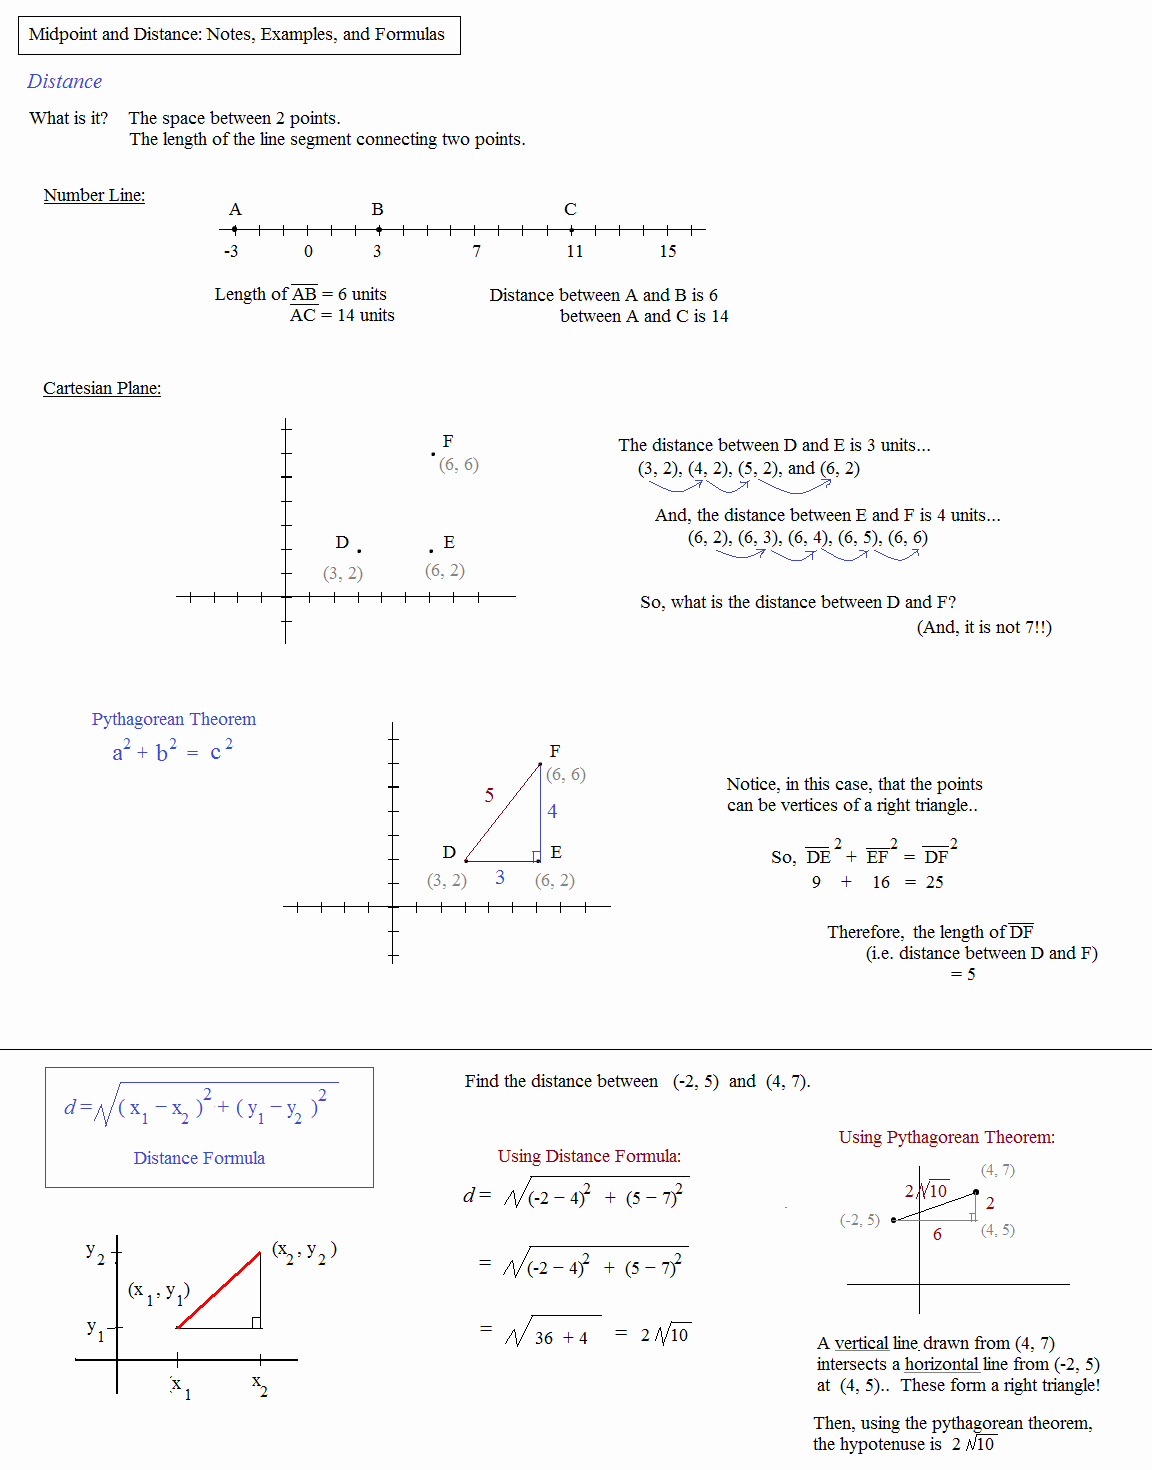 Distance formula Word Problems Worksheet Inspirational Math Plane Midpoint and Distance